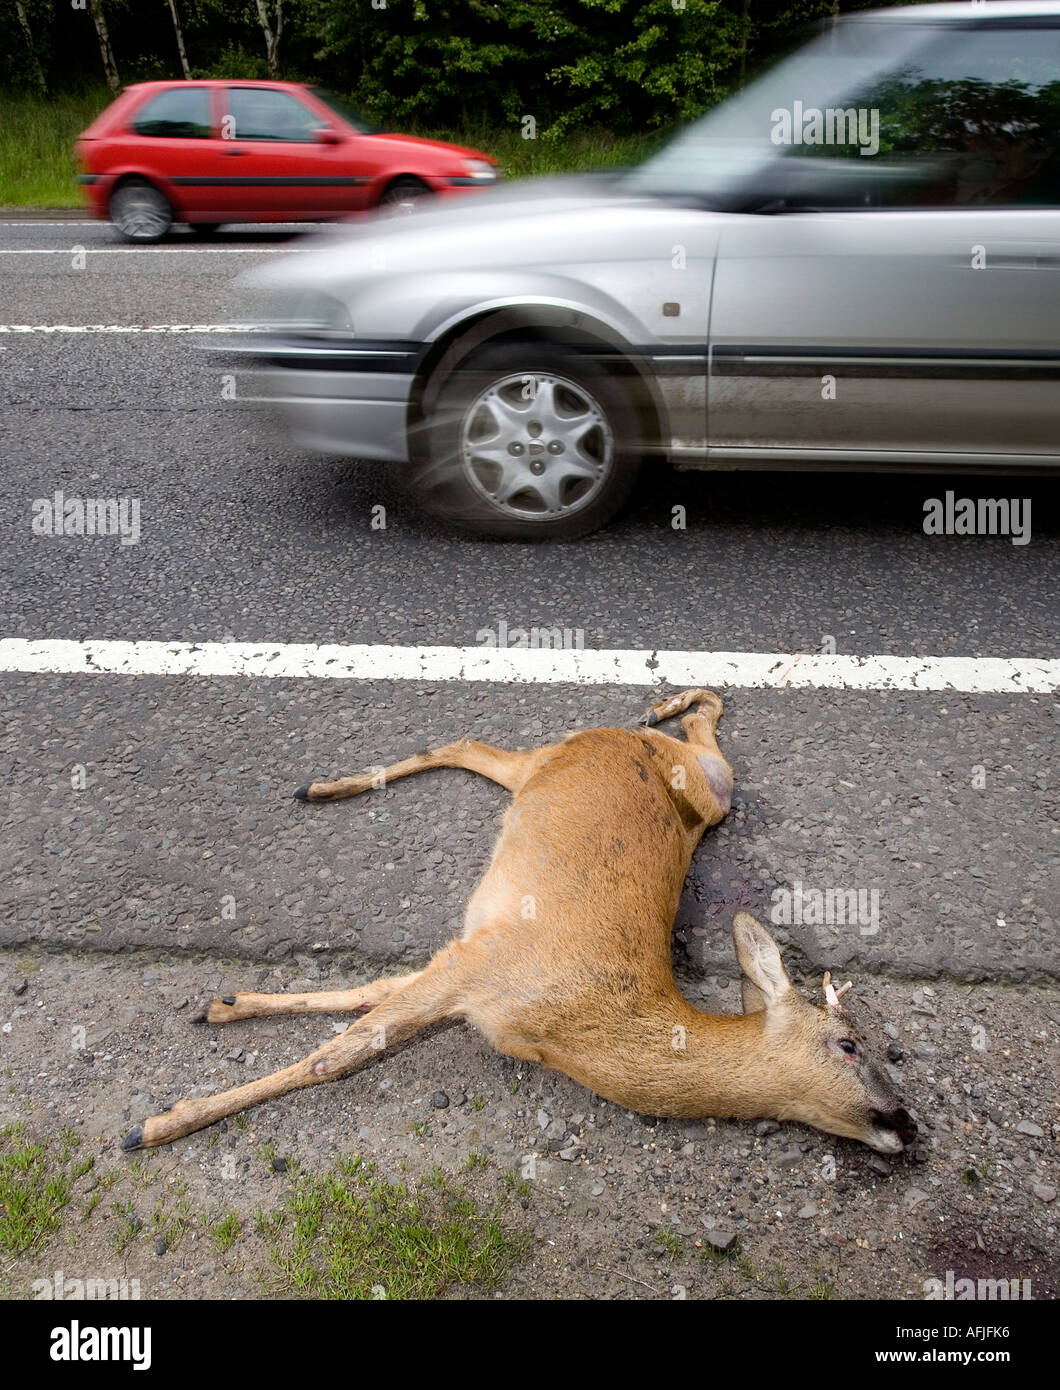 A young Deer lies on the side of a road after becoming a casualty of road kill in Warwickshire England UK Stock Photo